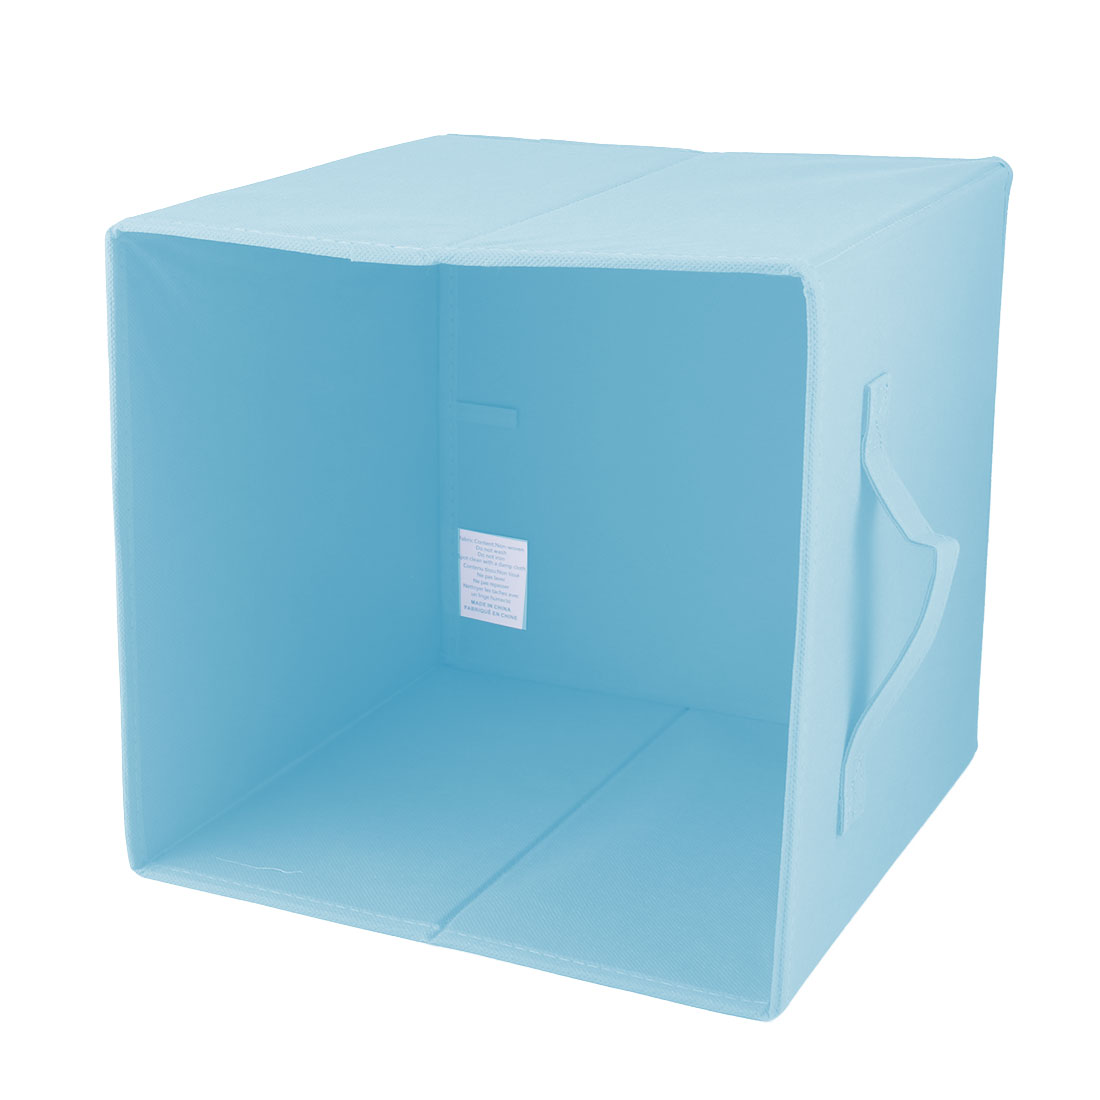 Apartment Non-woven Fabric Foldable Books Cosmetics Holder Storage Box Sky Blue - image 2 of 5